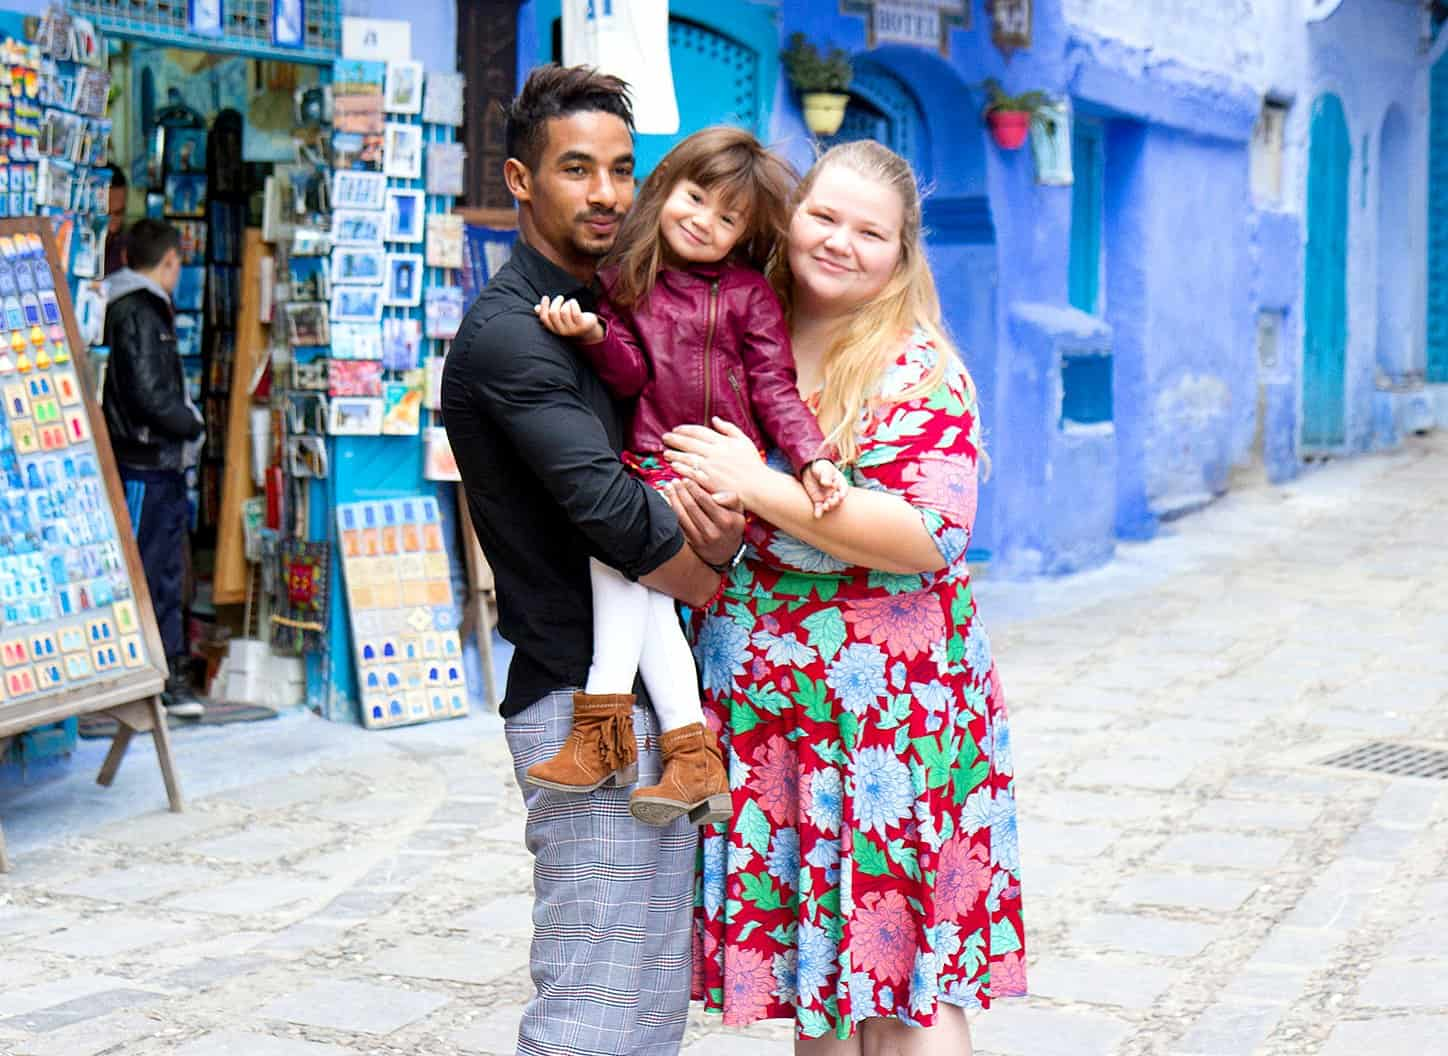 90 Day Fiance Happily Ever After Season 4 Nicole Nafziger and Azan M'Raouni